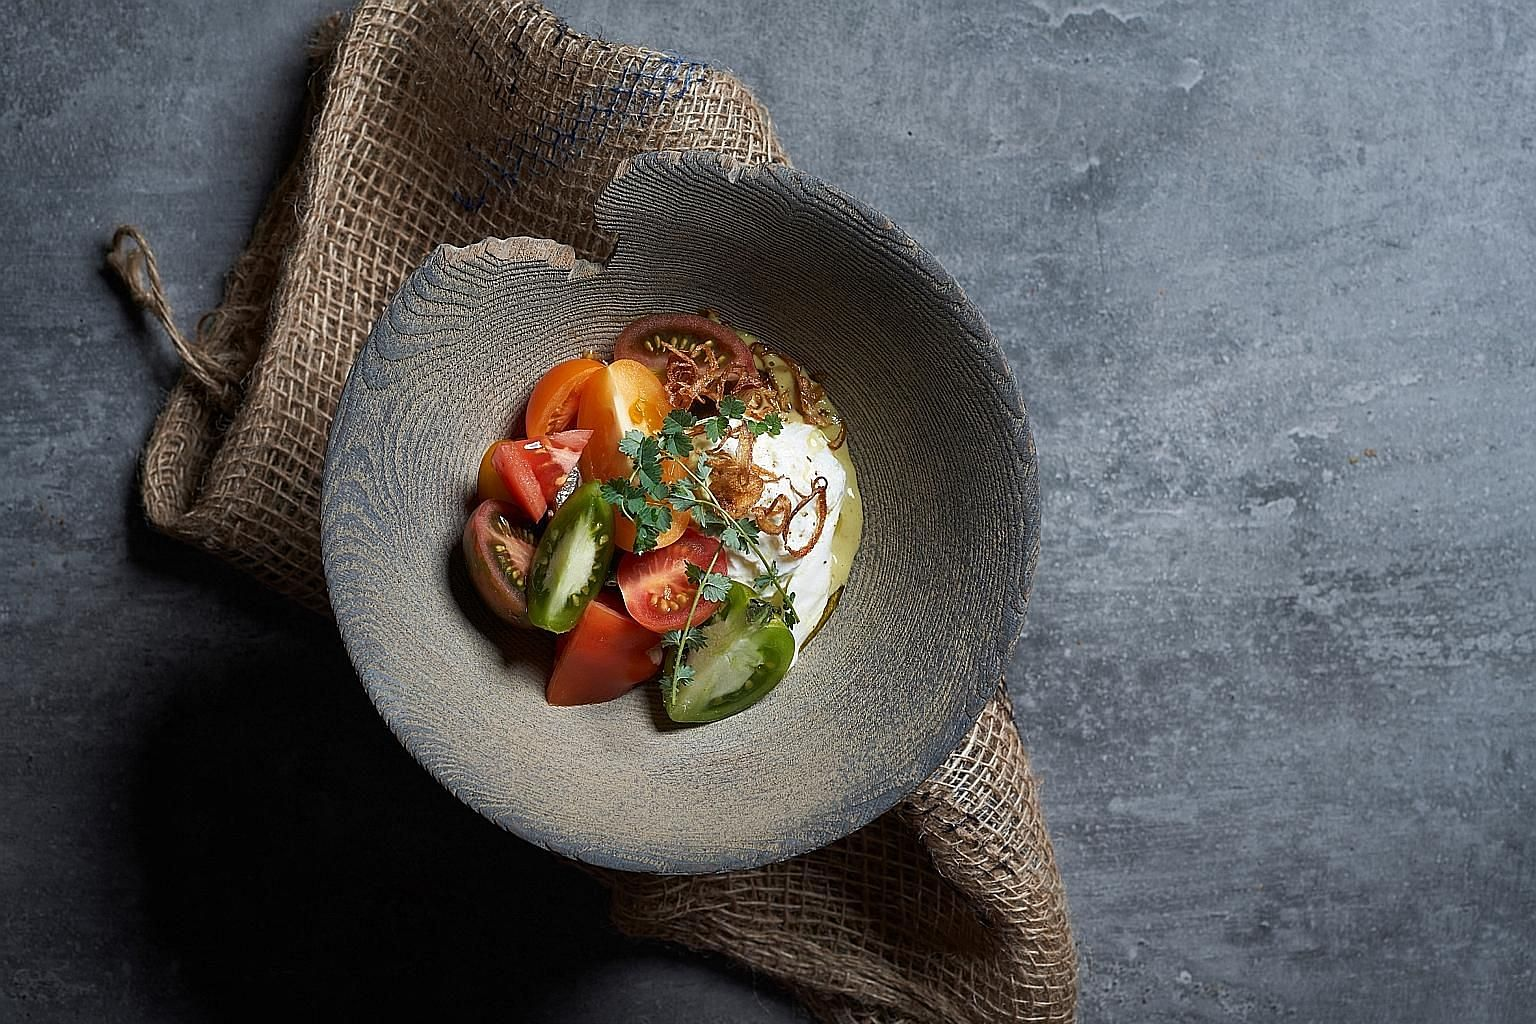 Burrata is spiced up with fermented green chilli.